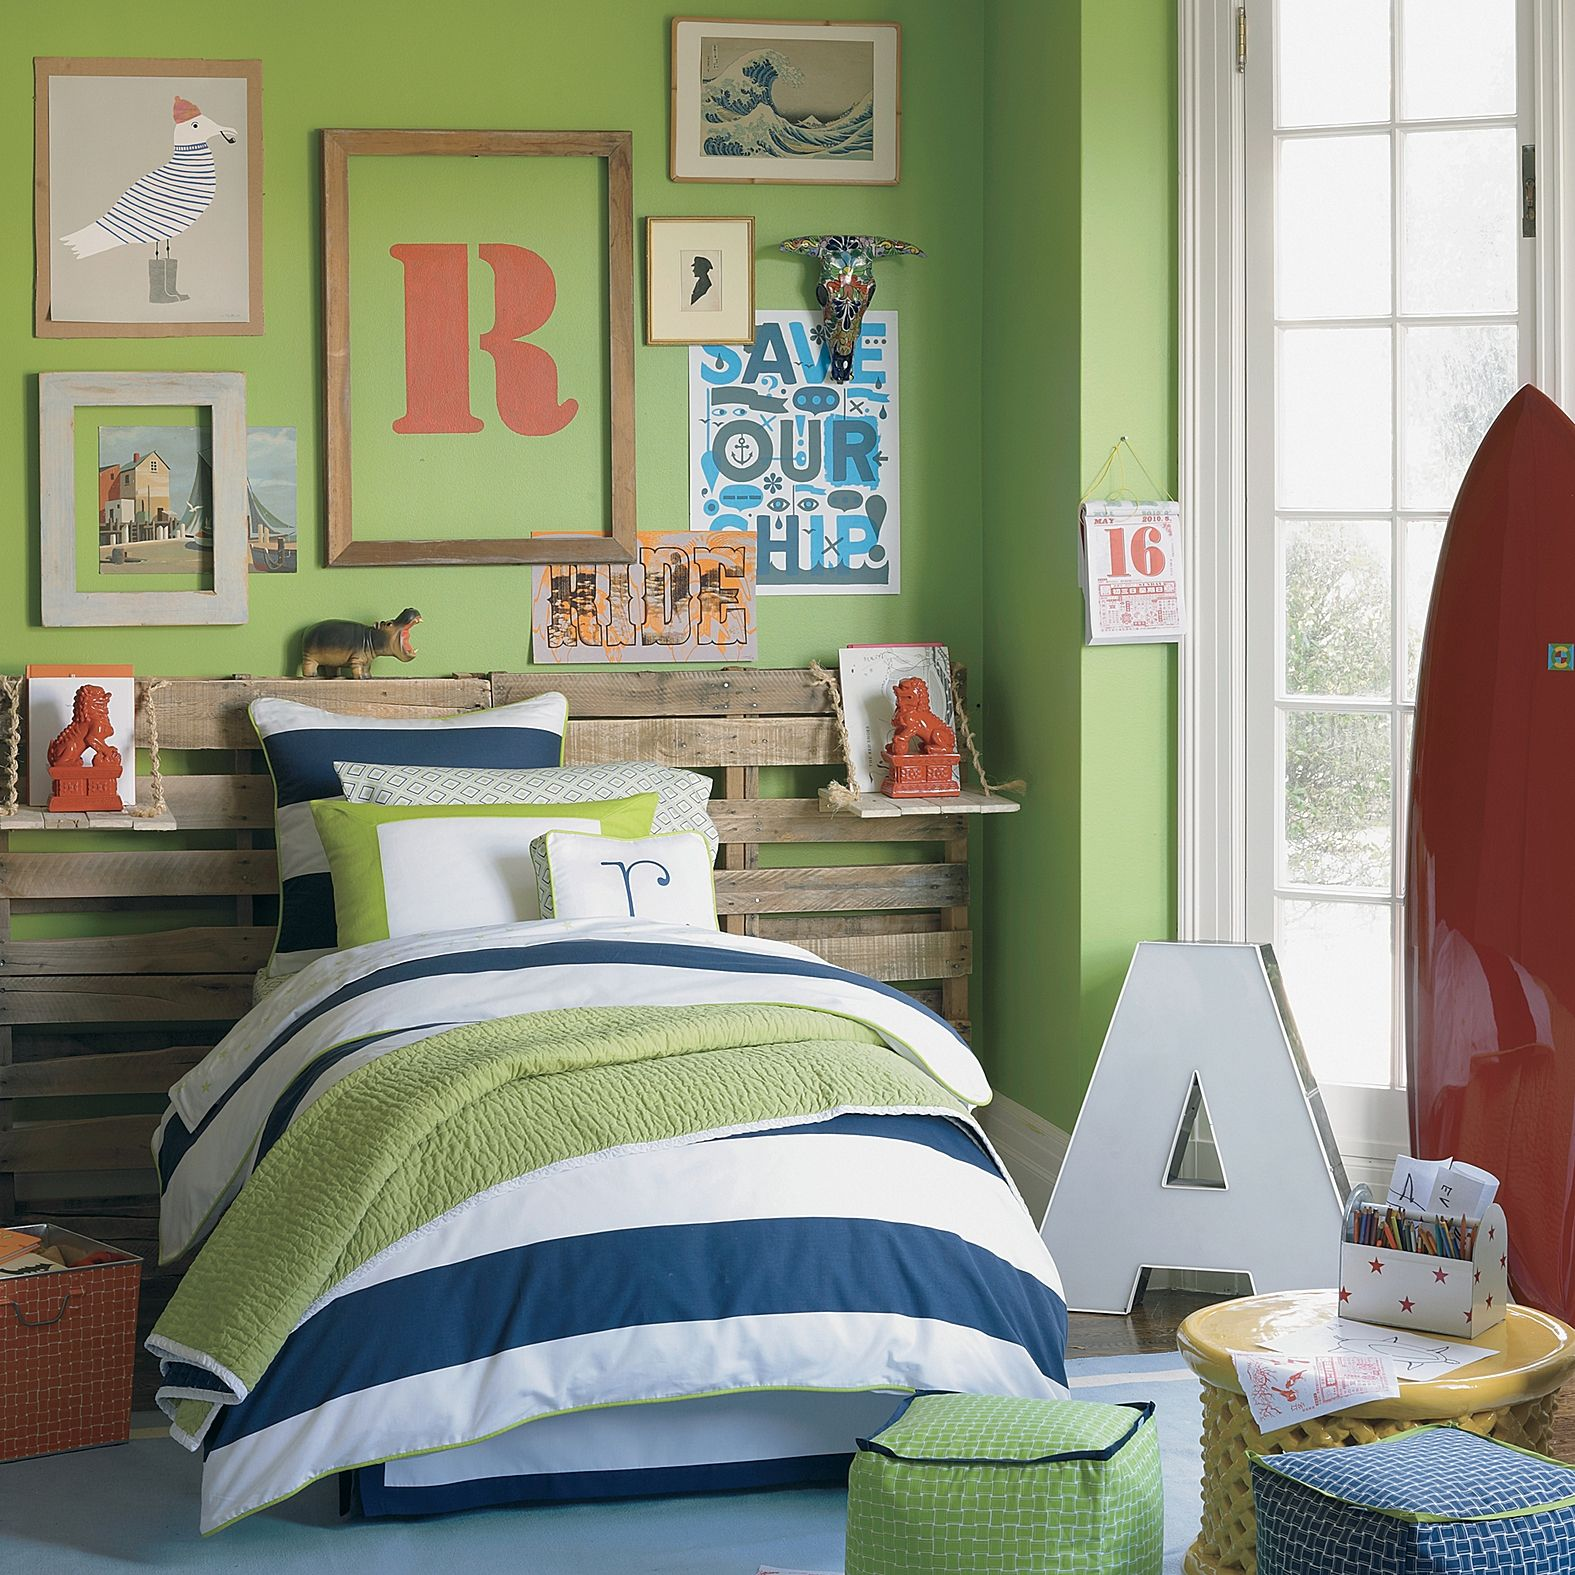 Bedroom Design For Kids Boys Nice Cheap Bedroom Sets Lighthouse Bedroom Decor Bedroom Decor Purple Gray: Nice Boy's Bedroom. Notice That They Used A Section Of